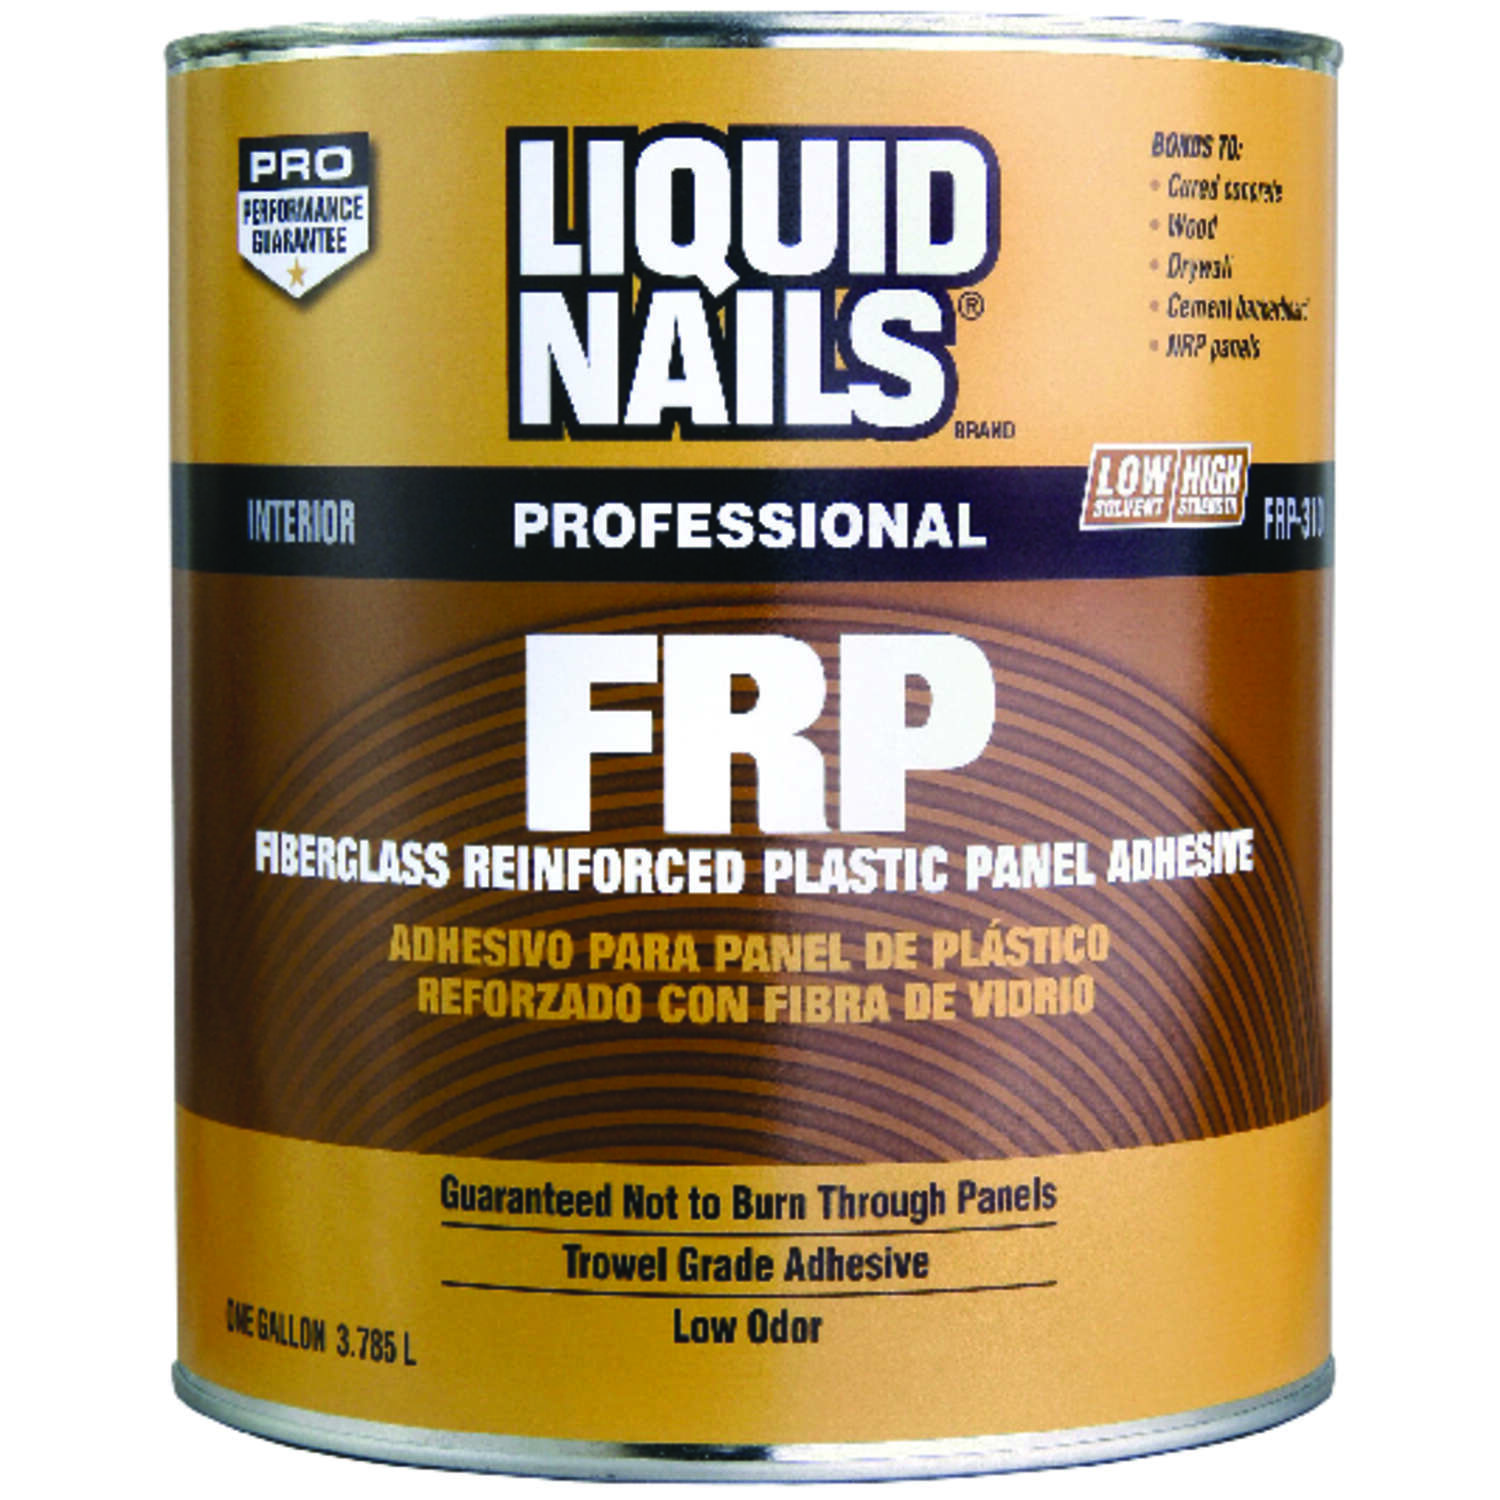 Liquid Nails  FRP Fiberglass Reinforced Plastic Panel  High Strength  Acrylic Latex  Adhesive  1 gal